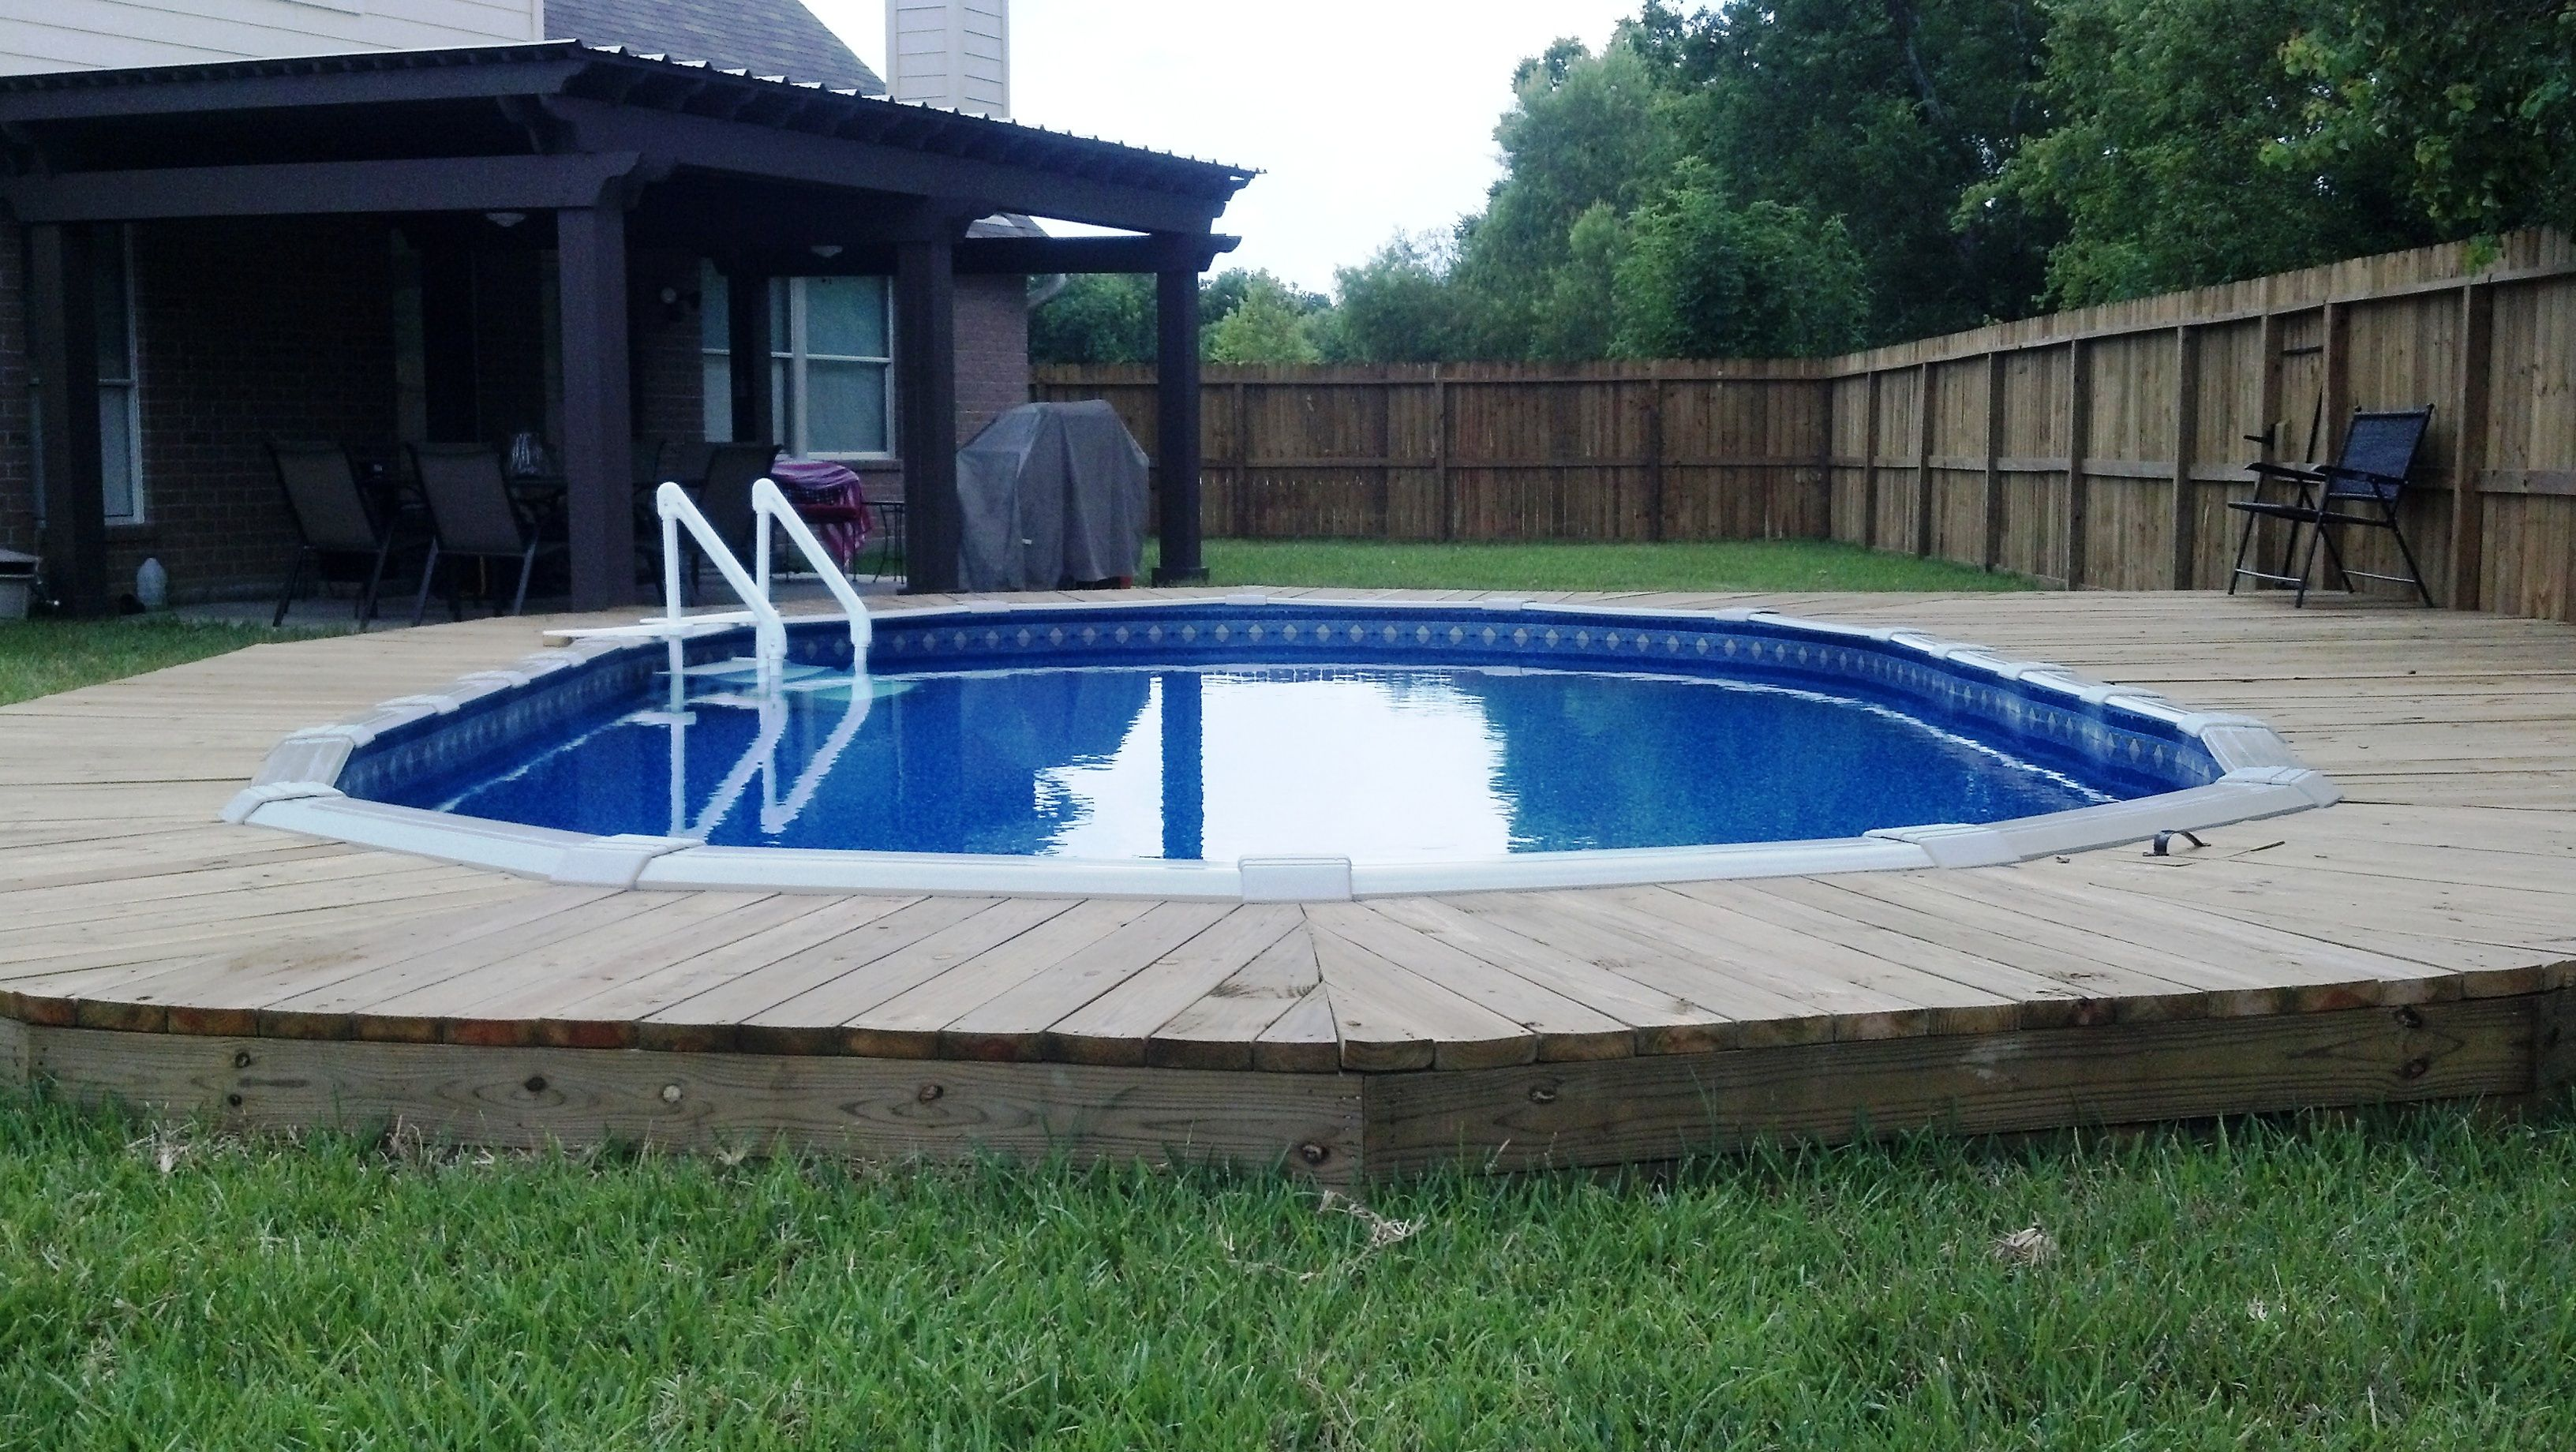 Whirlpool Garten Eingelassen Countersunk Above Ground Pool With Deck Gives The Feel Of